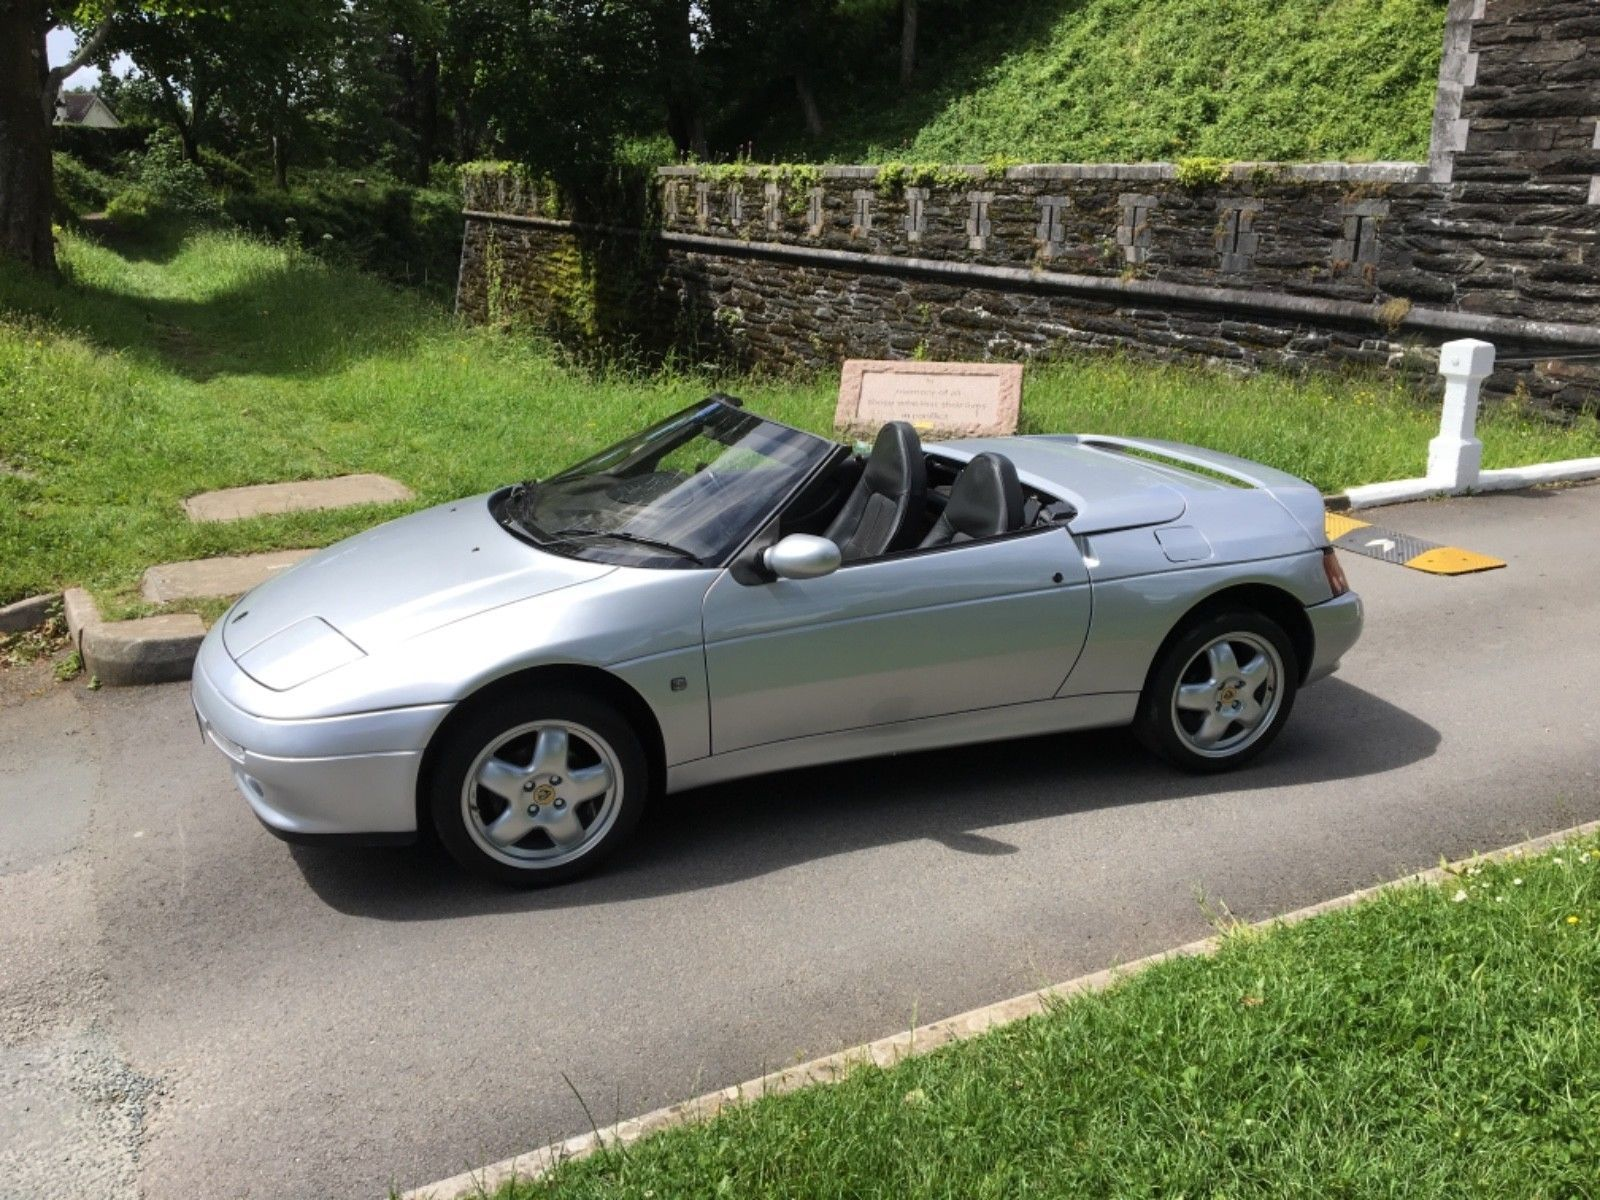 This Lotus Elan Turbo M100 1996 p ly Miles is for sale